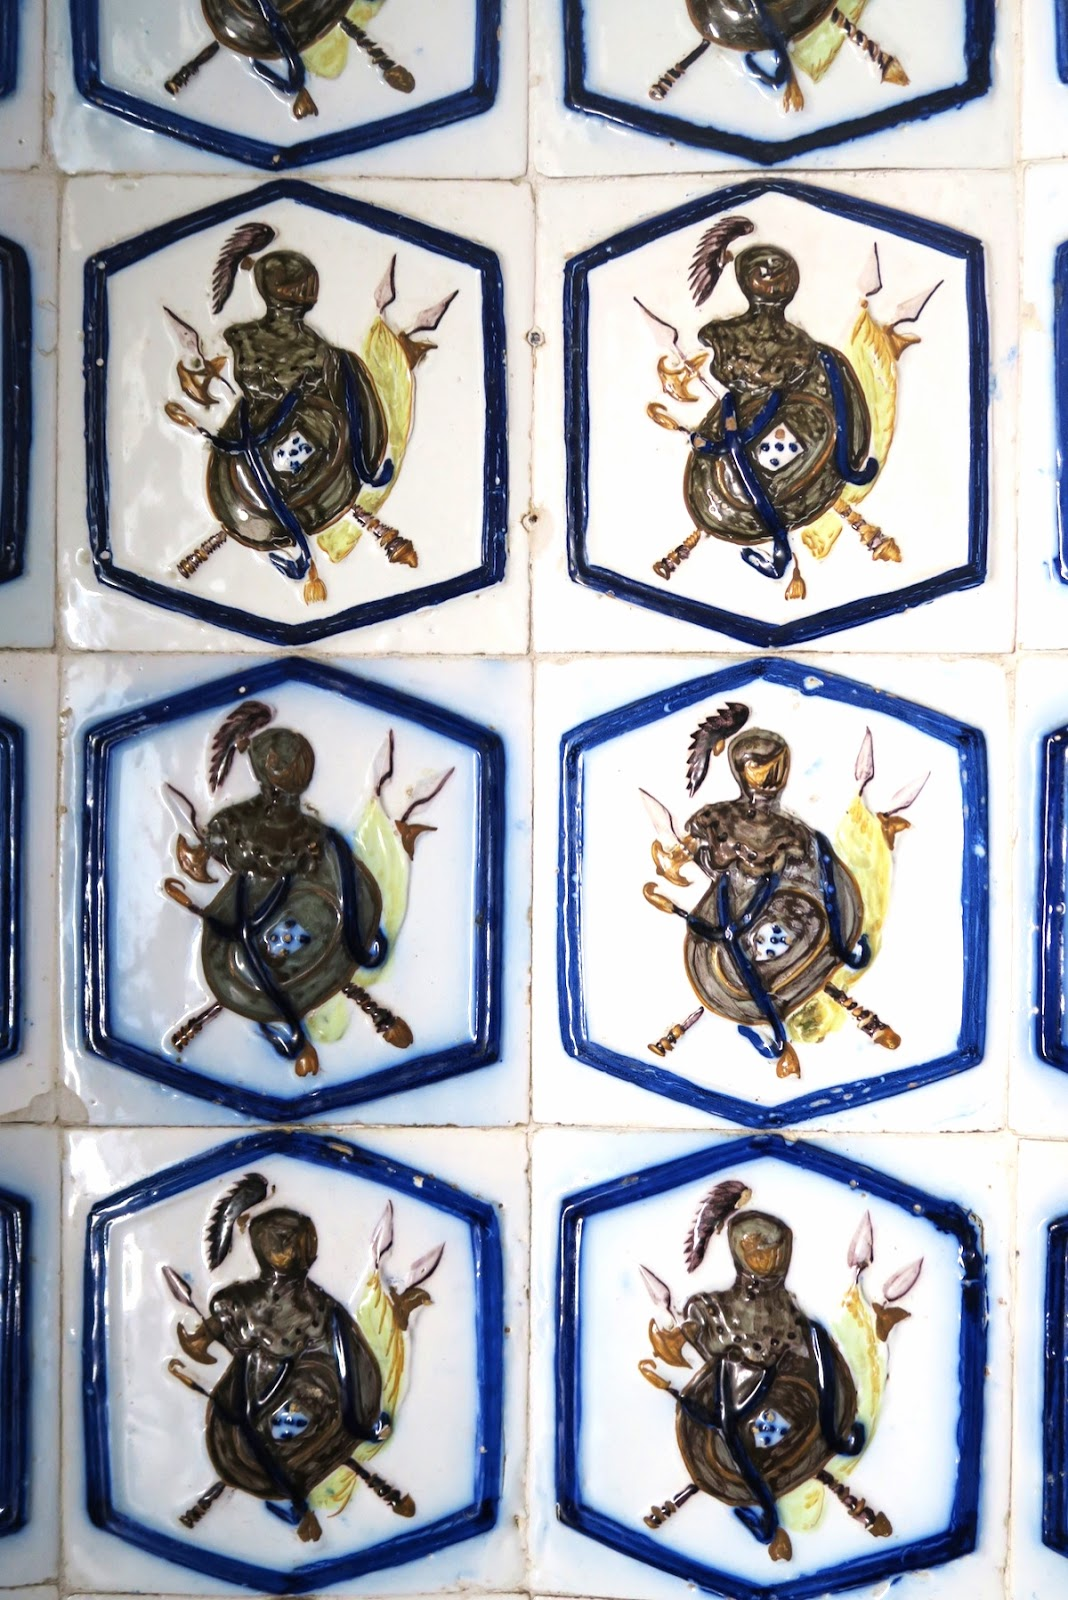 This is a close-up of beautiful tile work at the Pena Palace in Sintra Portugal.  This tile is a soldier on a horse riding with his weapon.